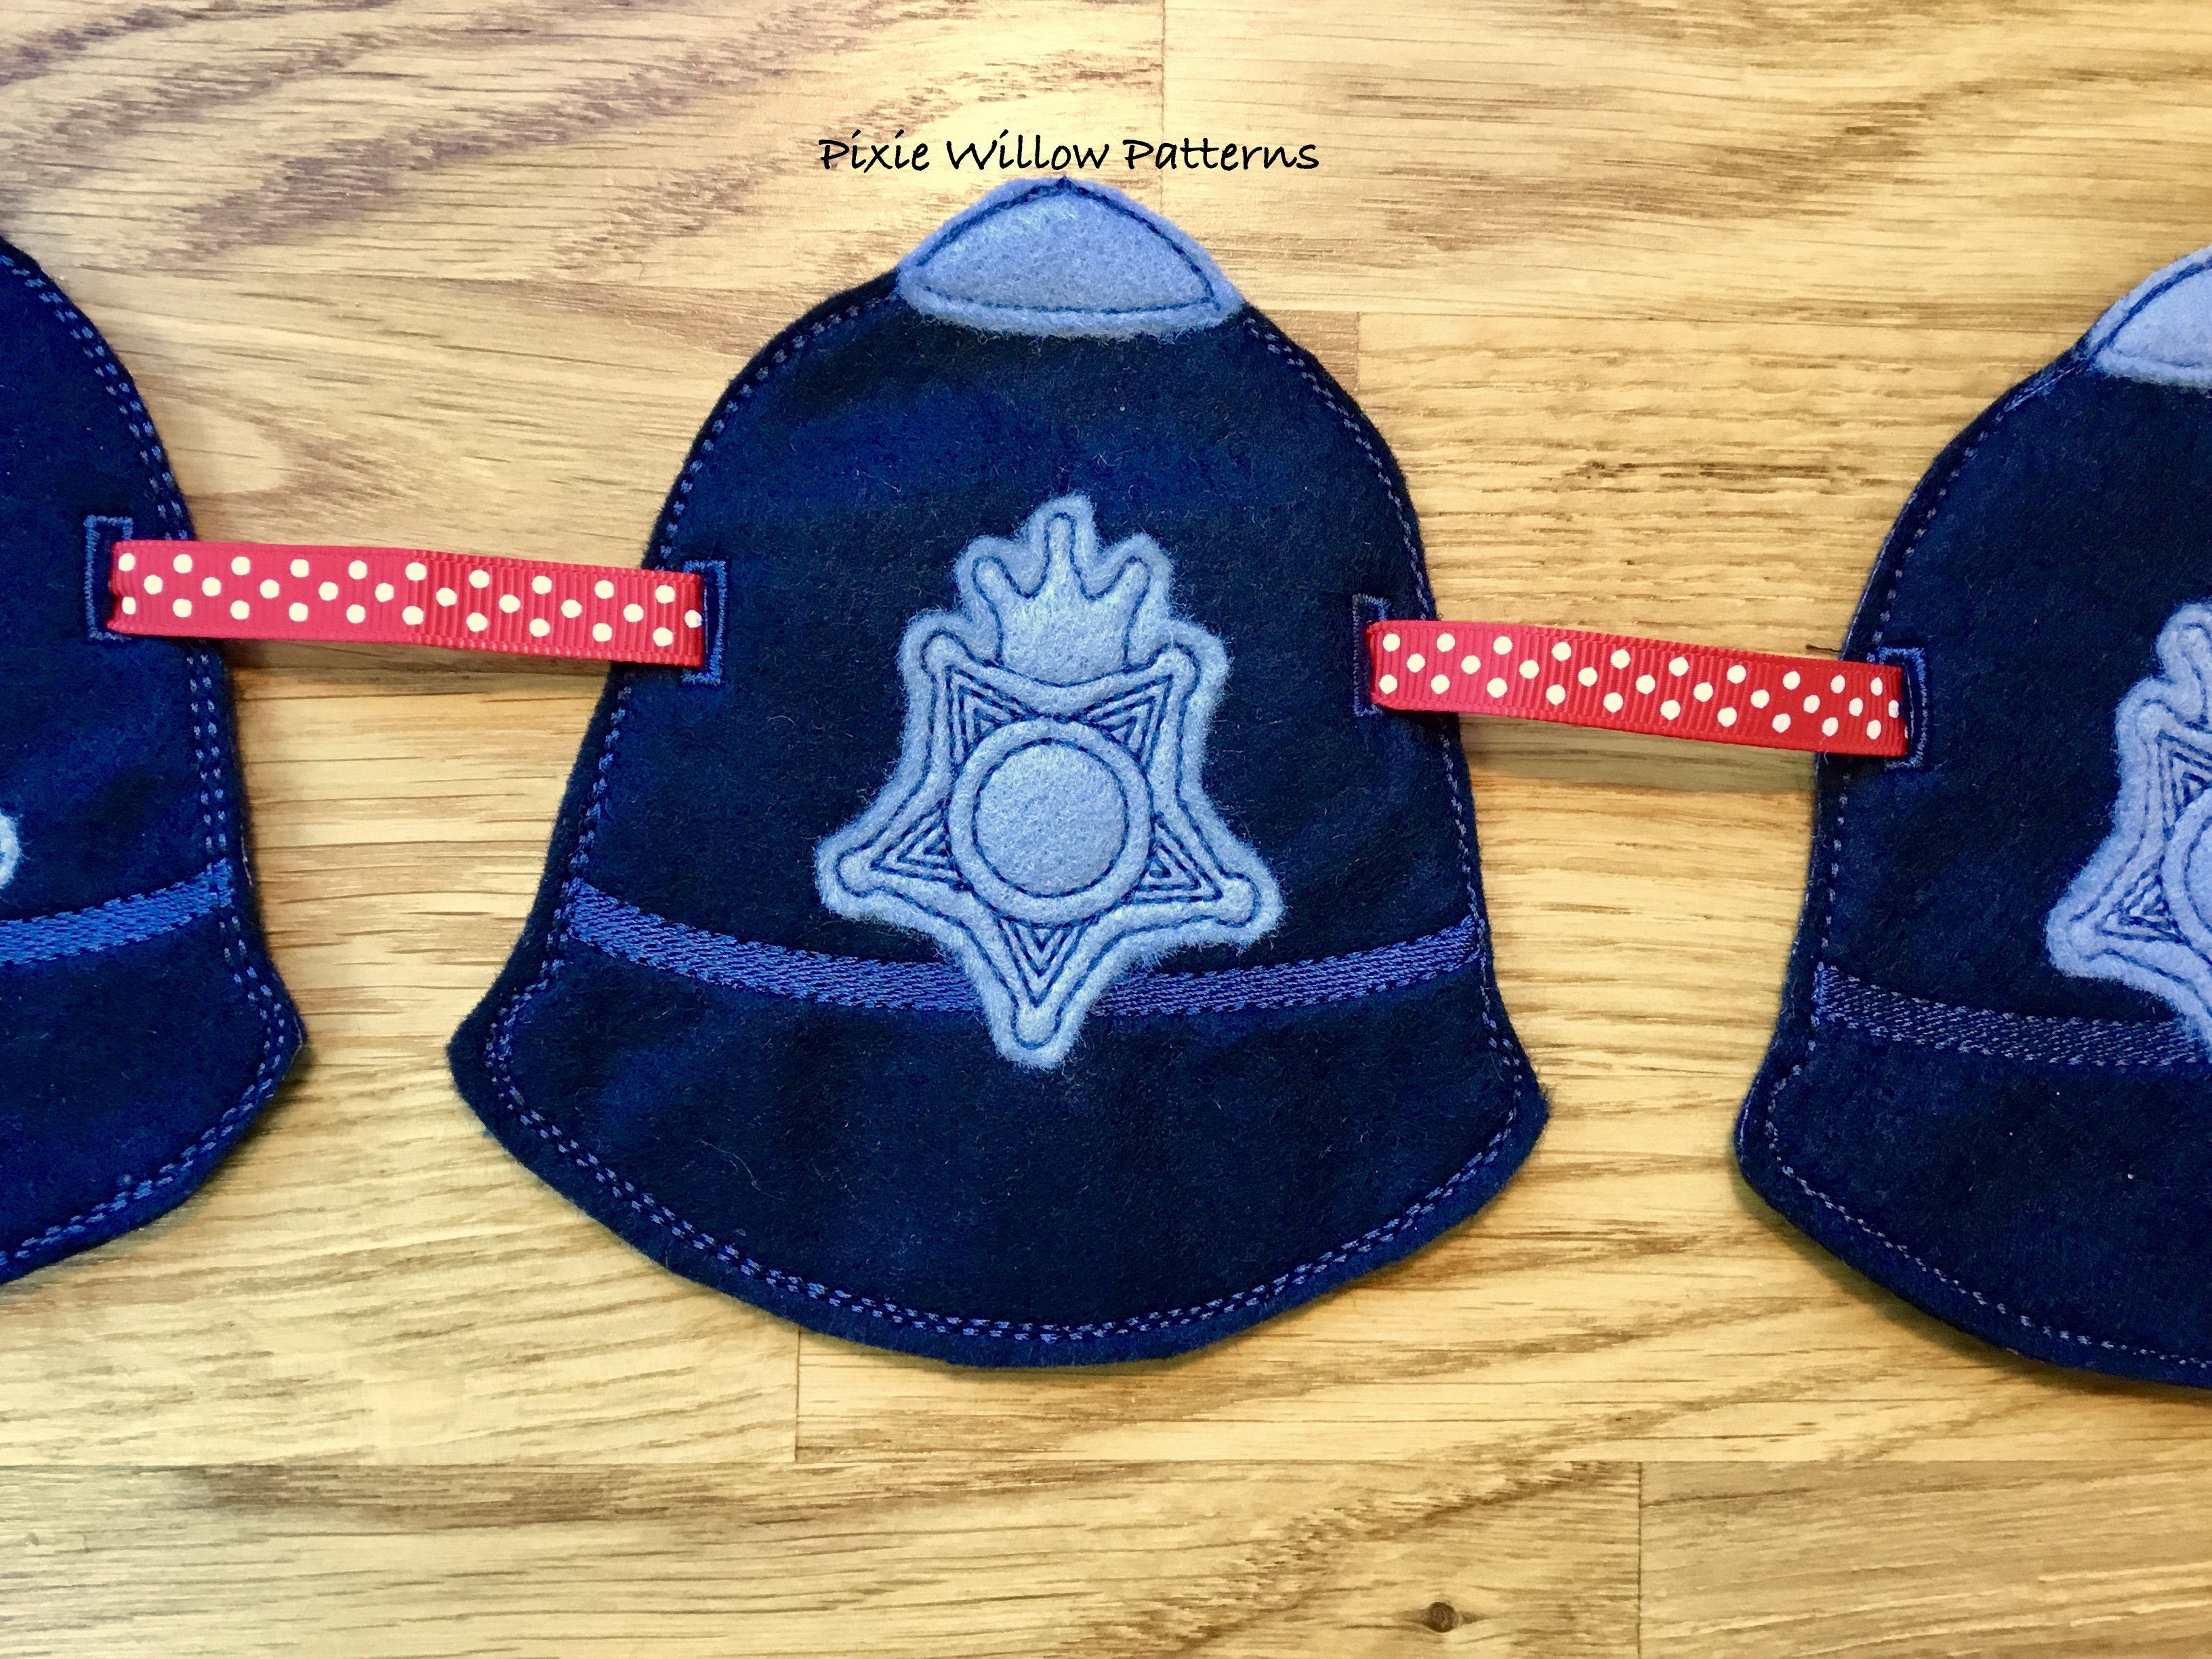 In The Hoop Policeman Hat Bunting  ITH Machine Embroidery Applique  Policeman Hat Bunting  4x4, 5x7, 8x12 and 9x12 Hoops  British Icon Series